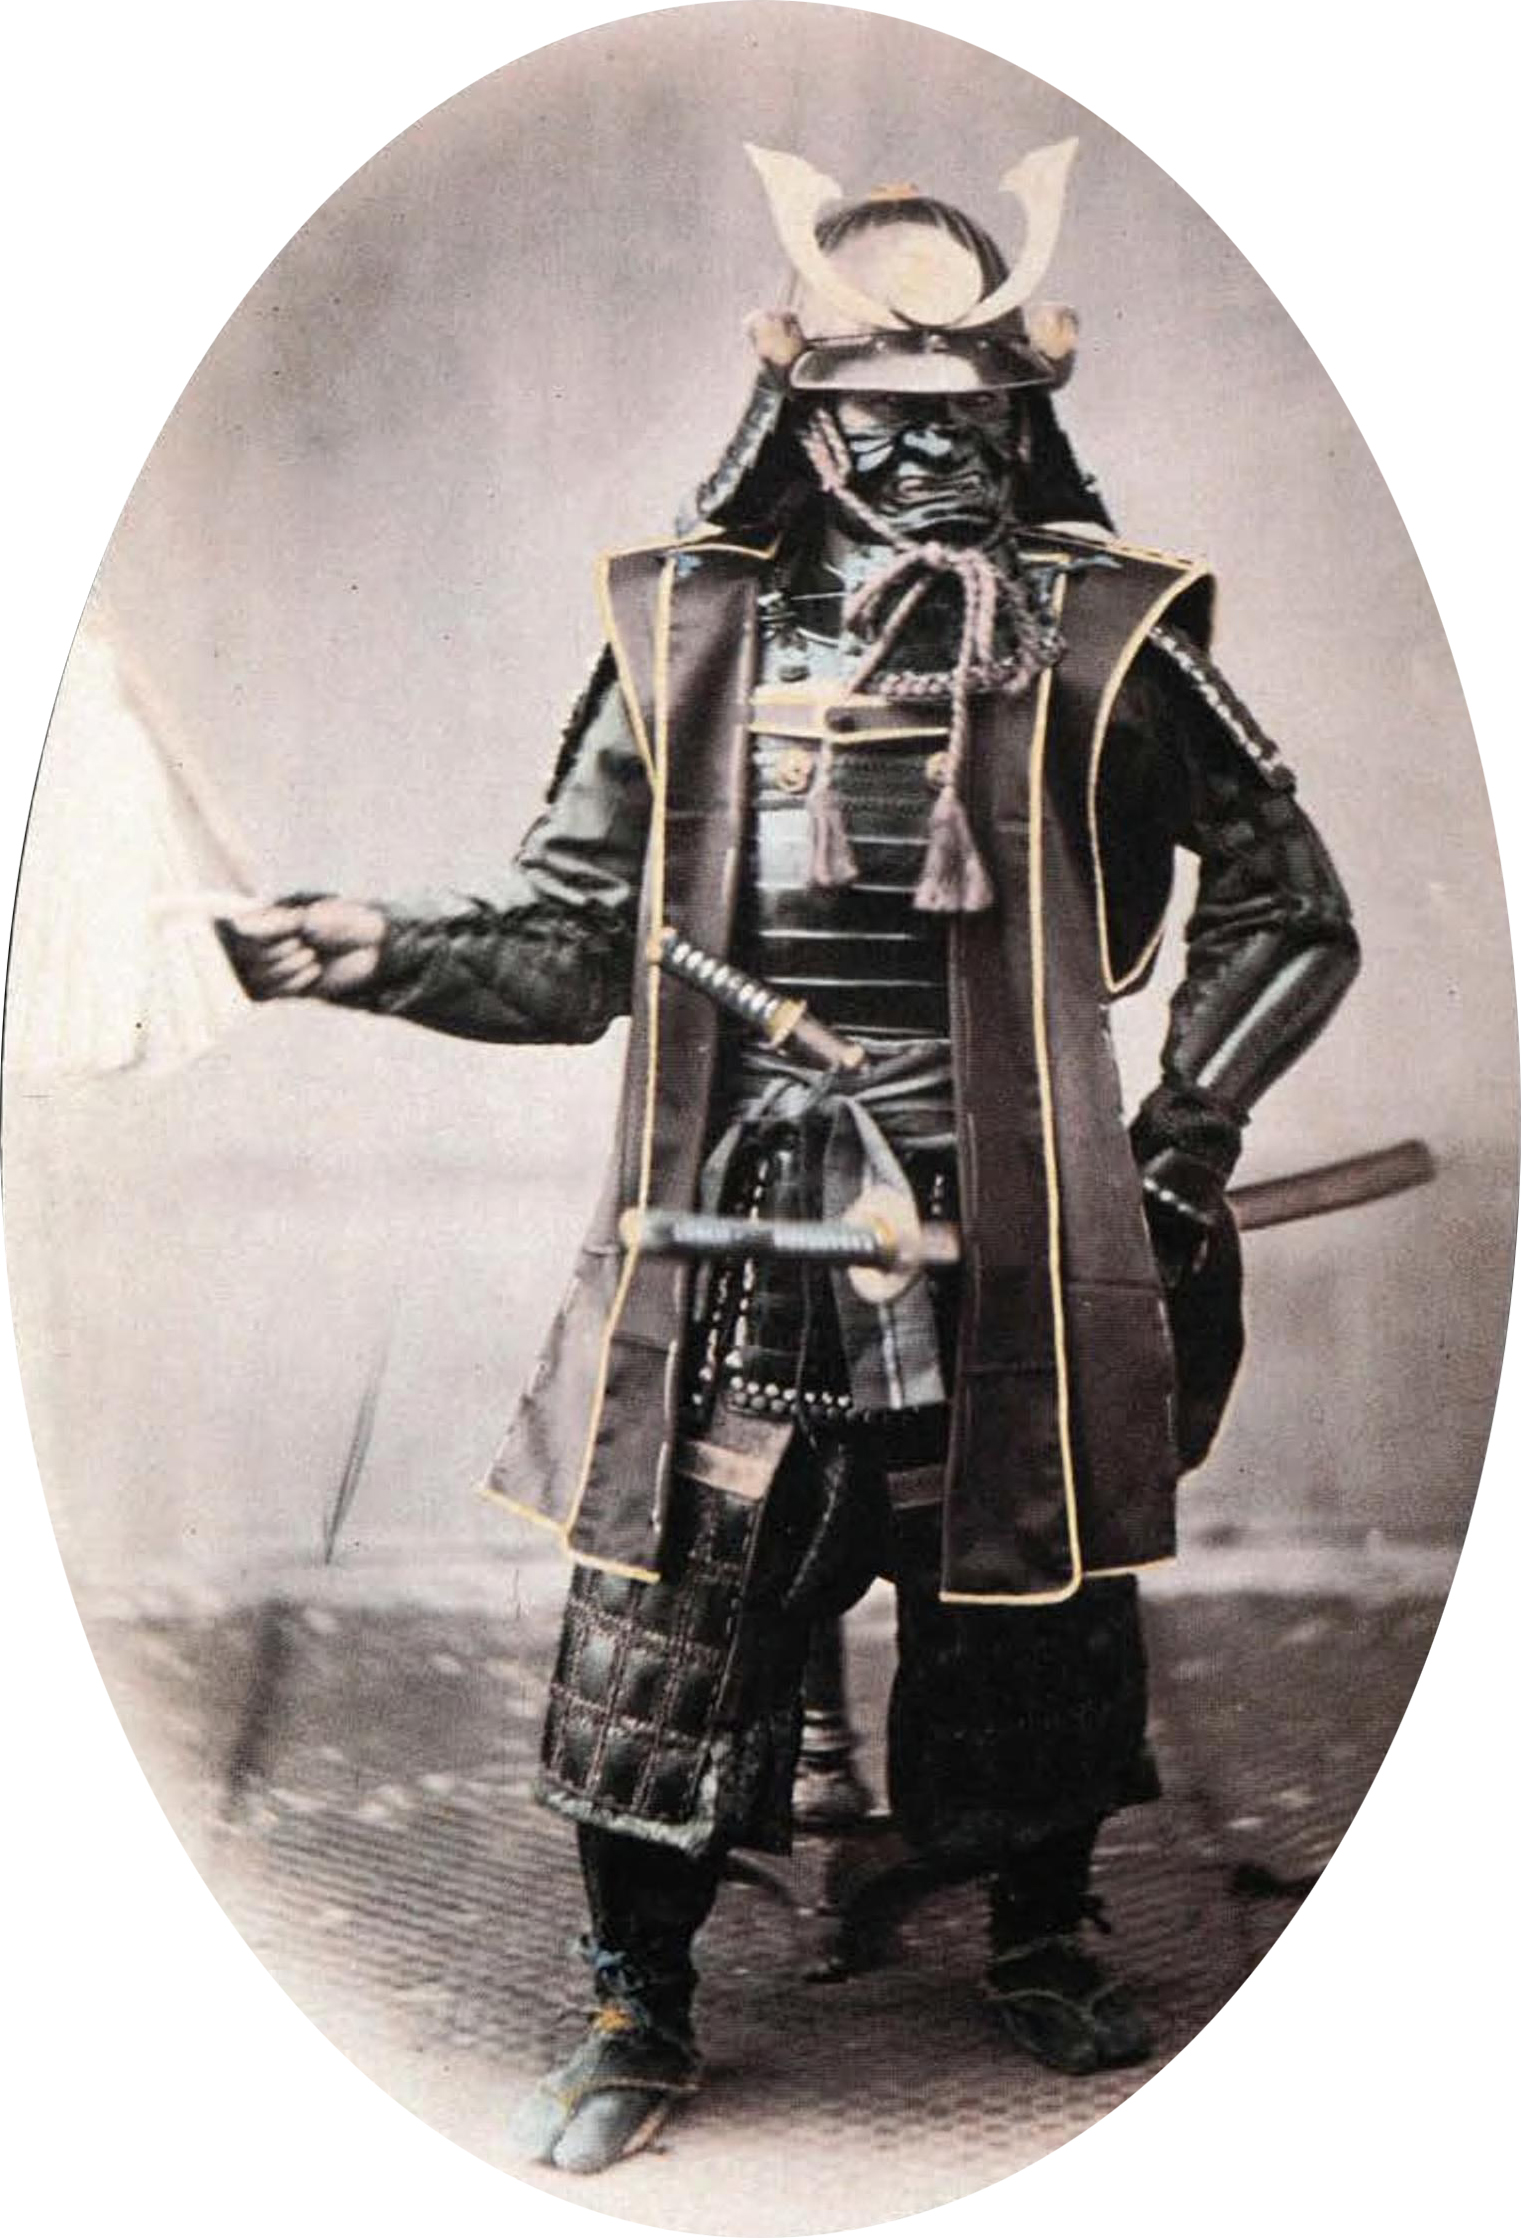 https://upload.wikimedia.org/wikipedia/commons/0/0e/Samurai.jpg